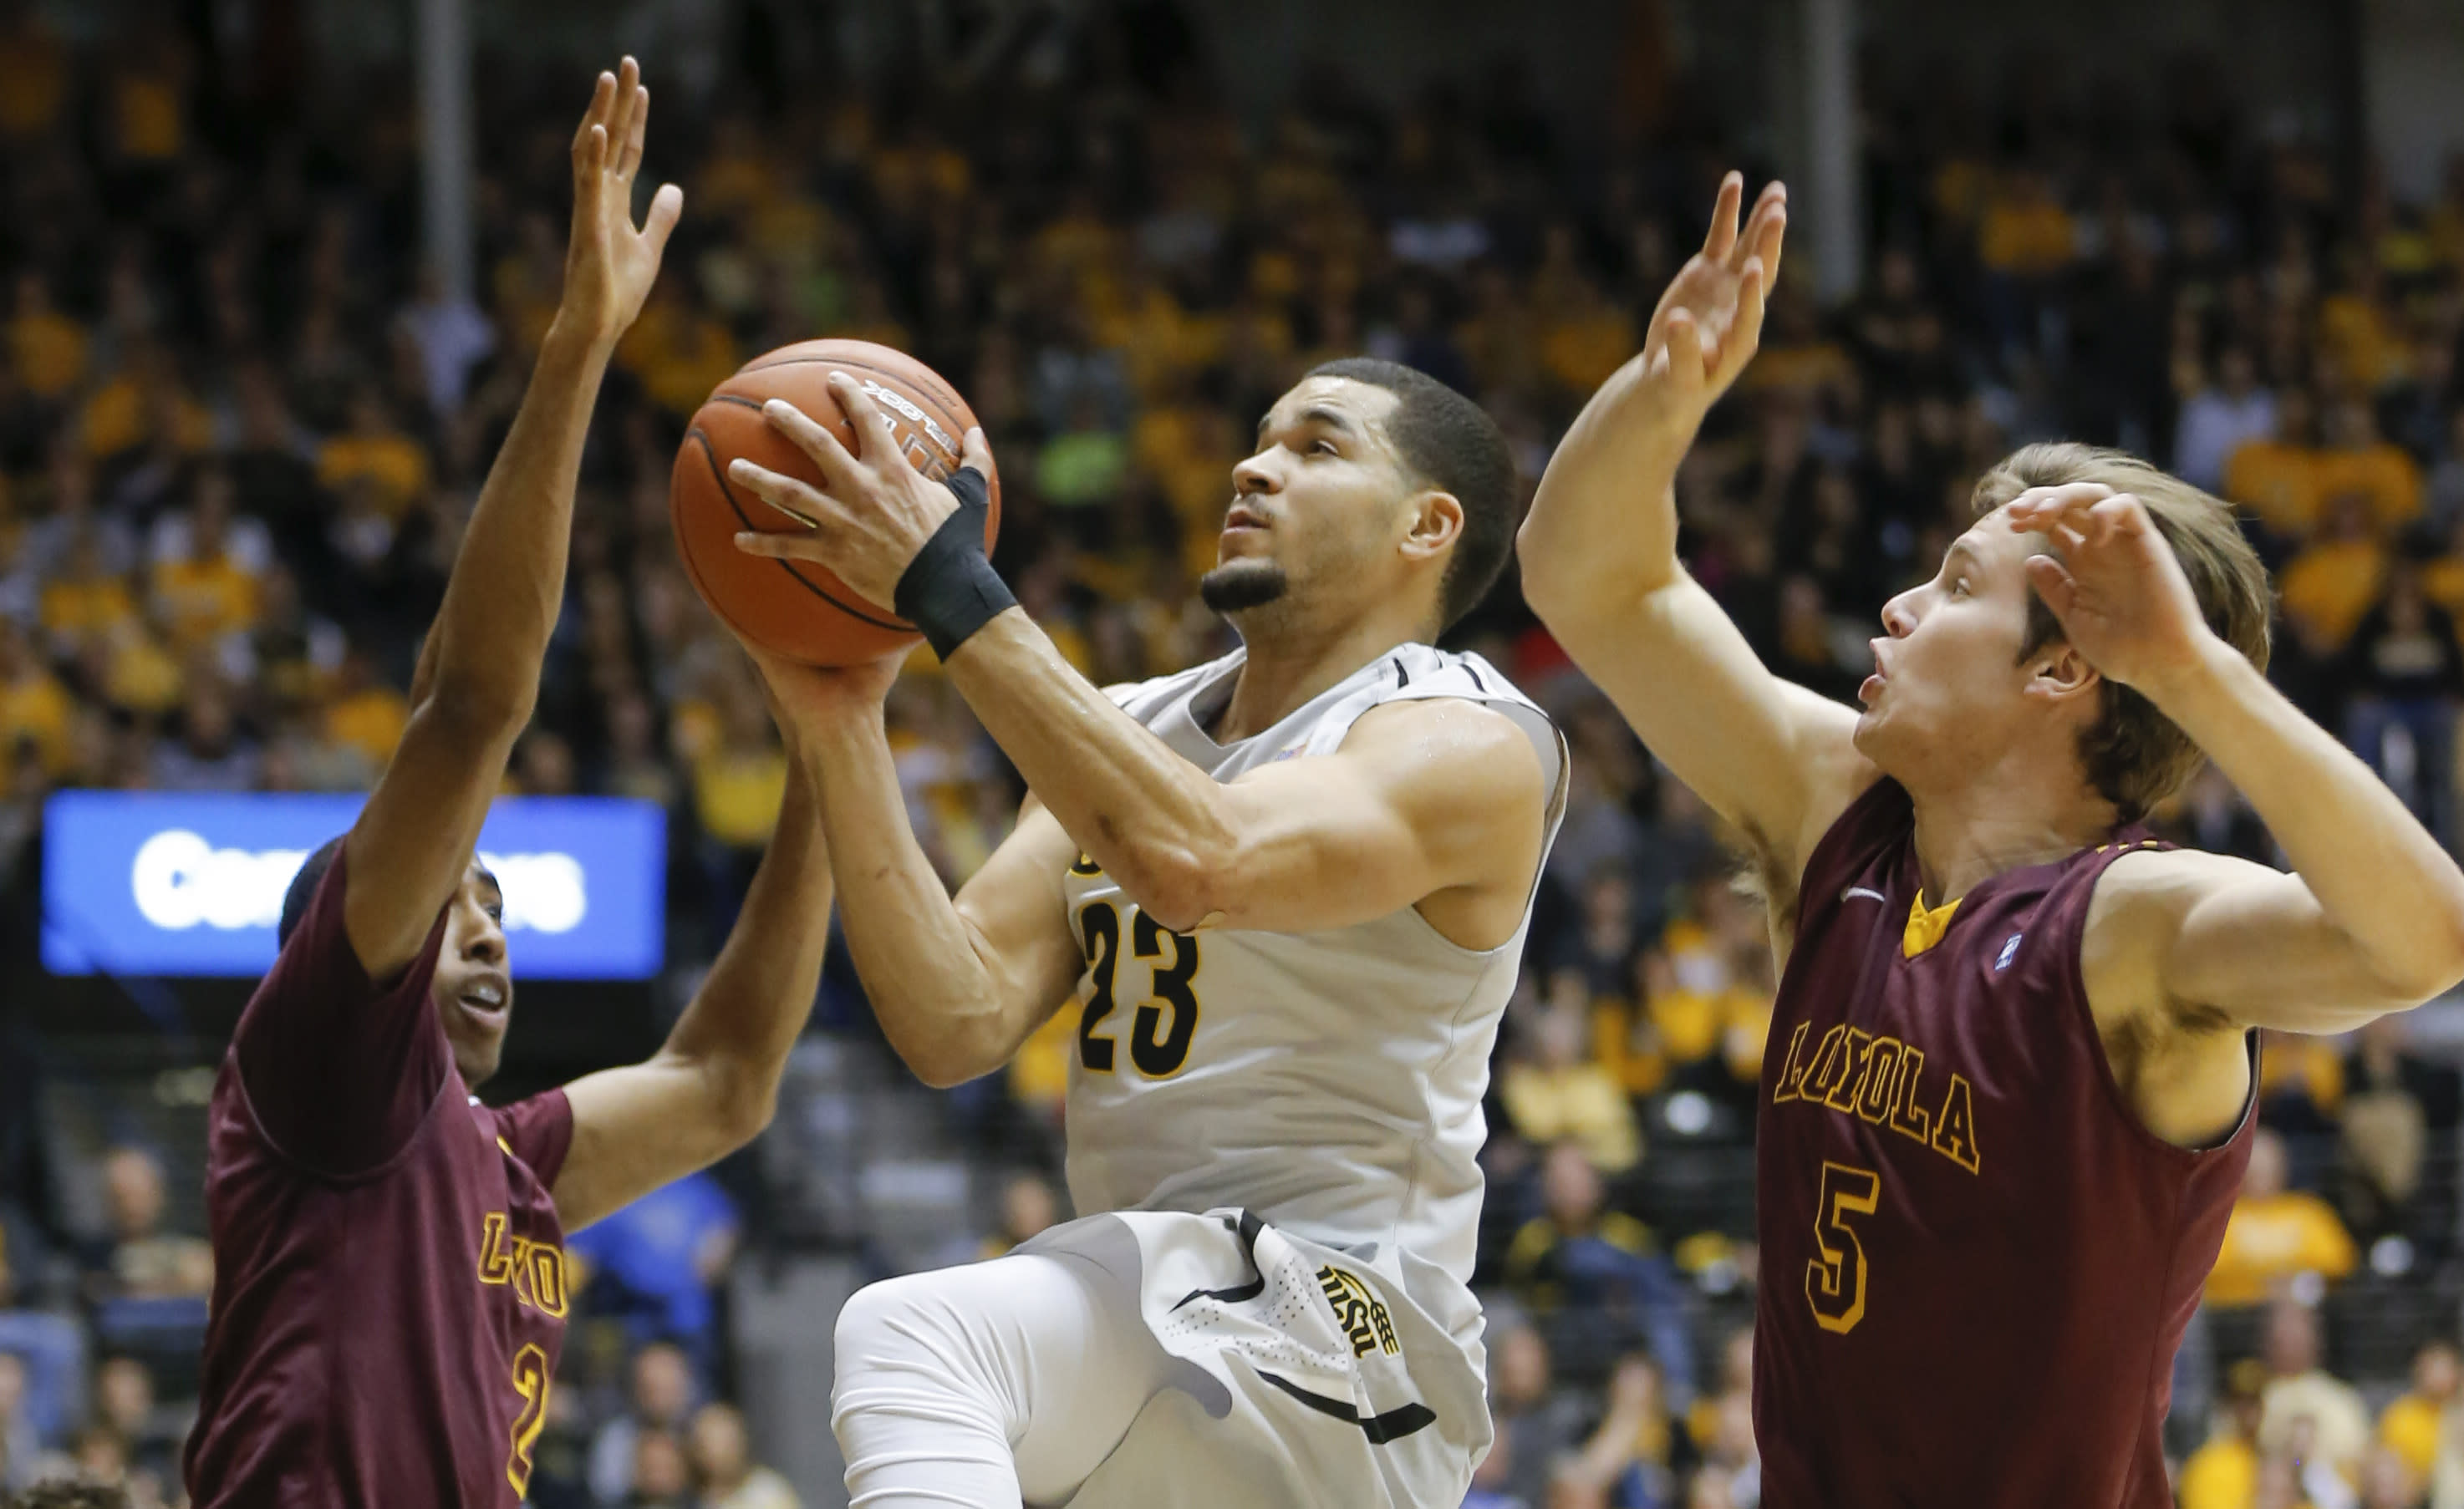 VanVleet lifts No. 12 Wichita State to 58-47 win over Loyola